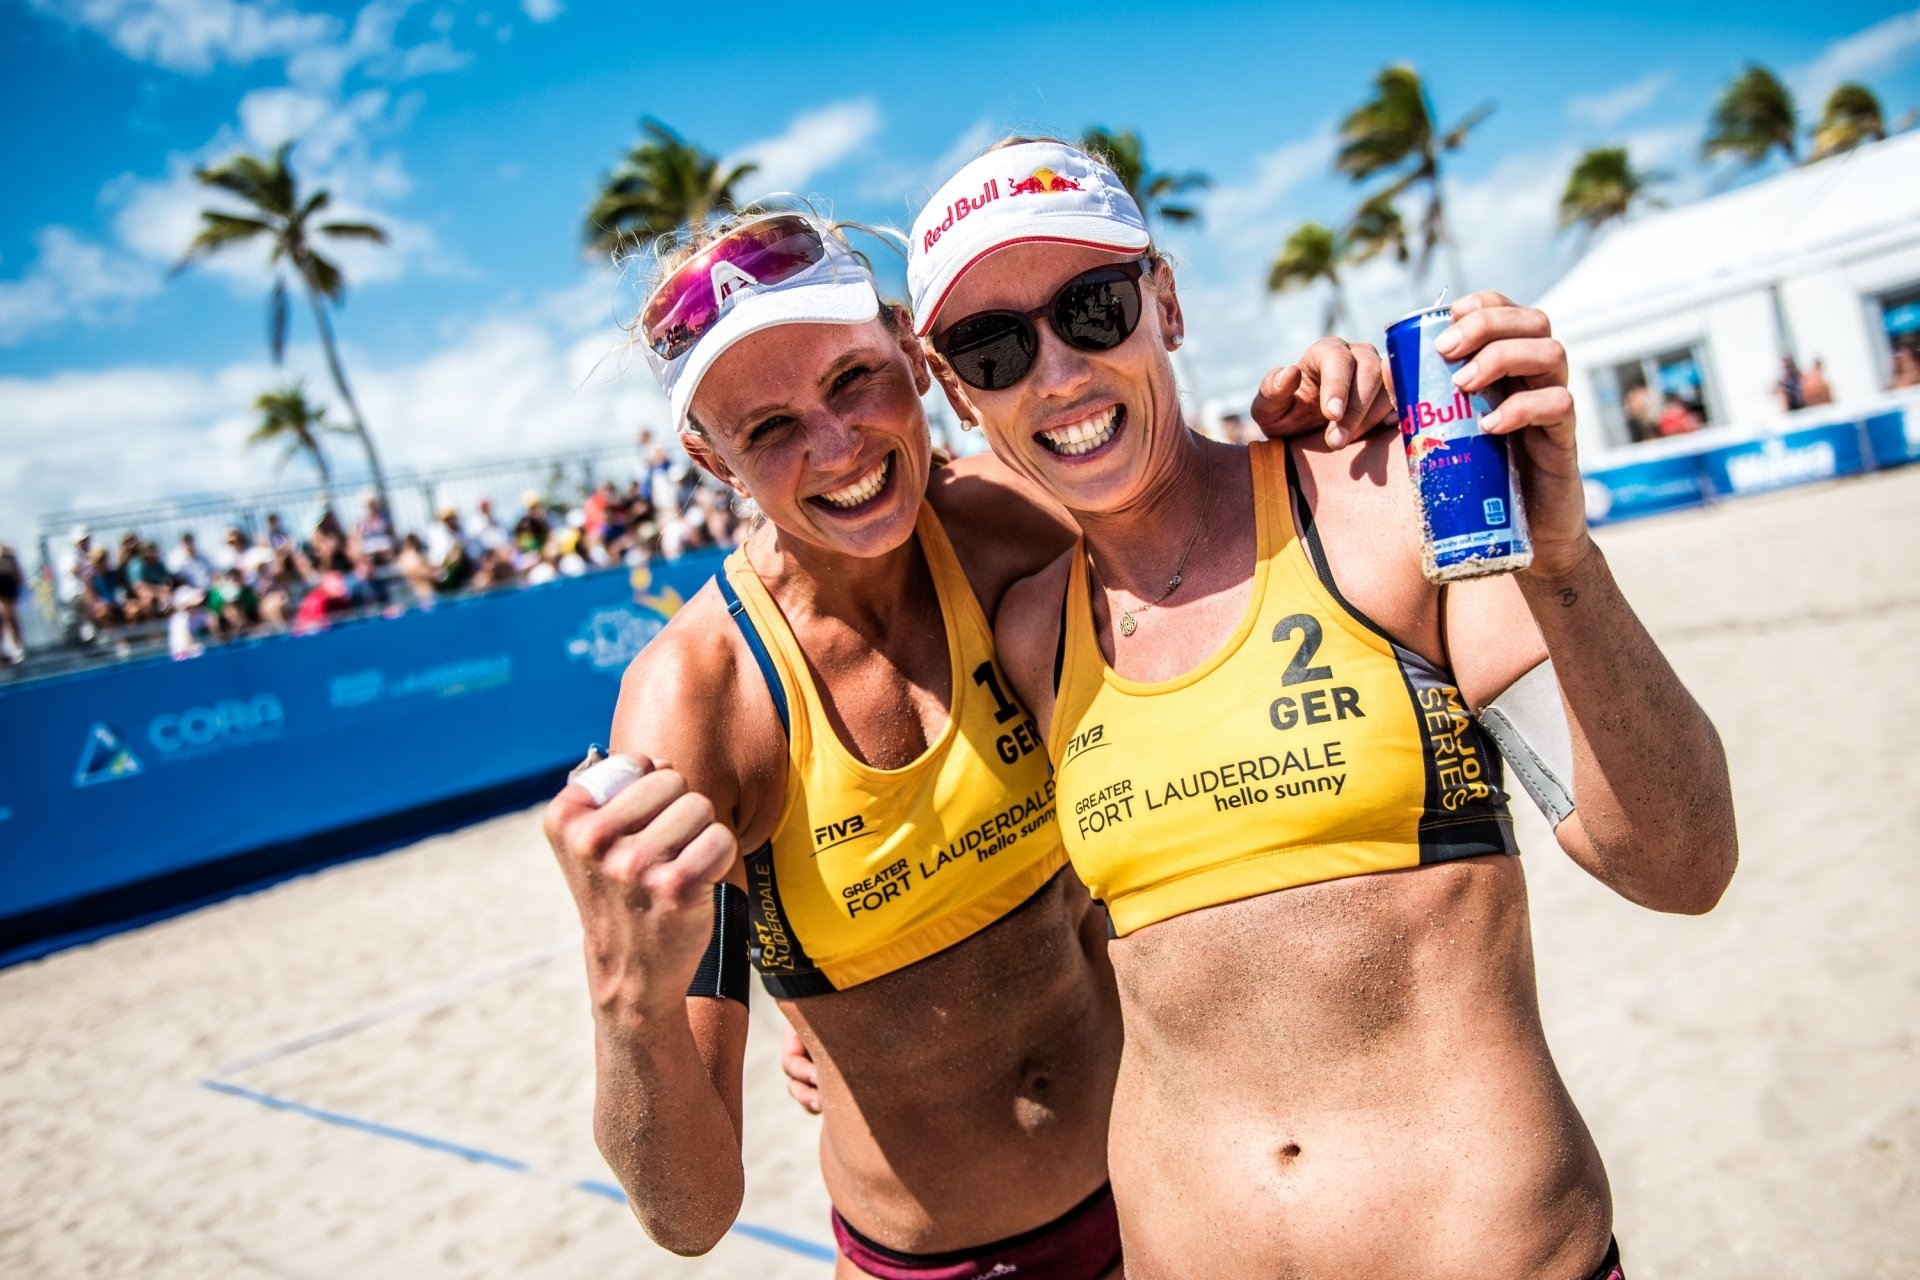 Germans Maggie Kozuch and Karla Borger will test their game in the Dutch Tour this weekend